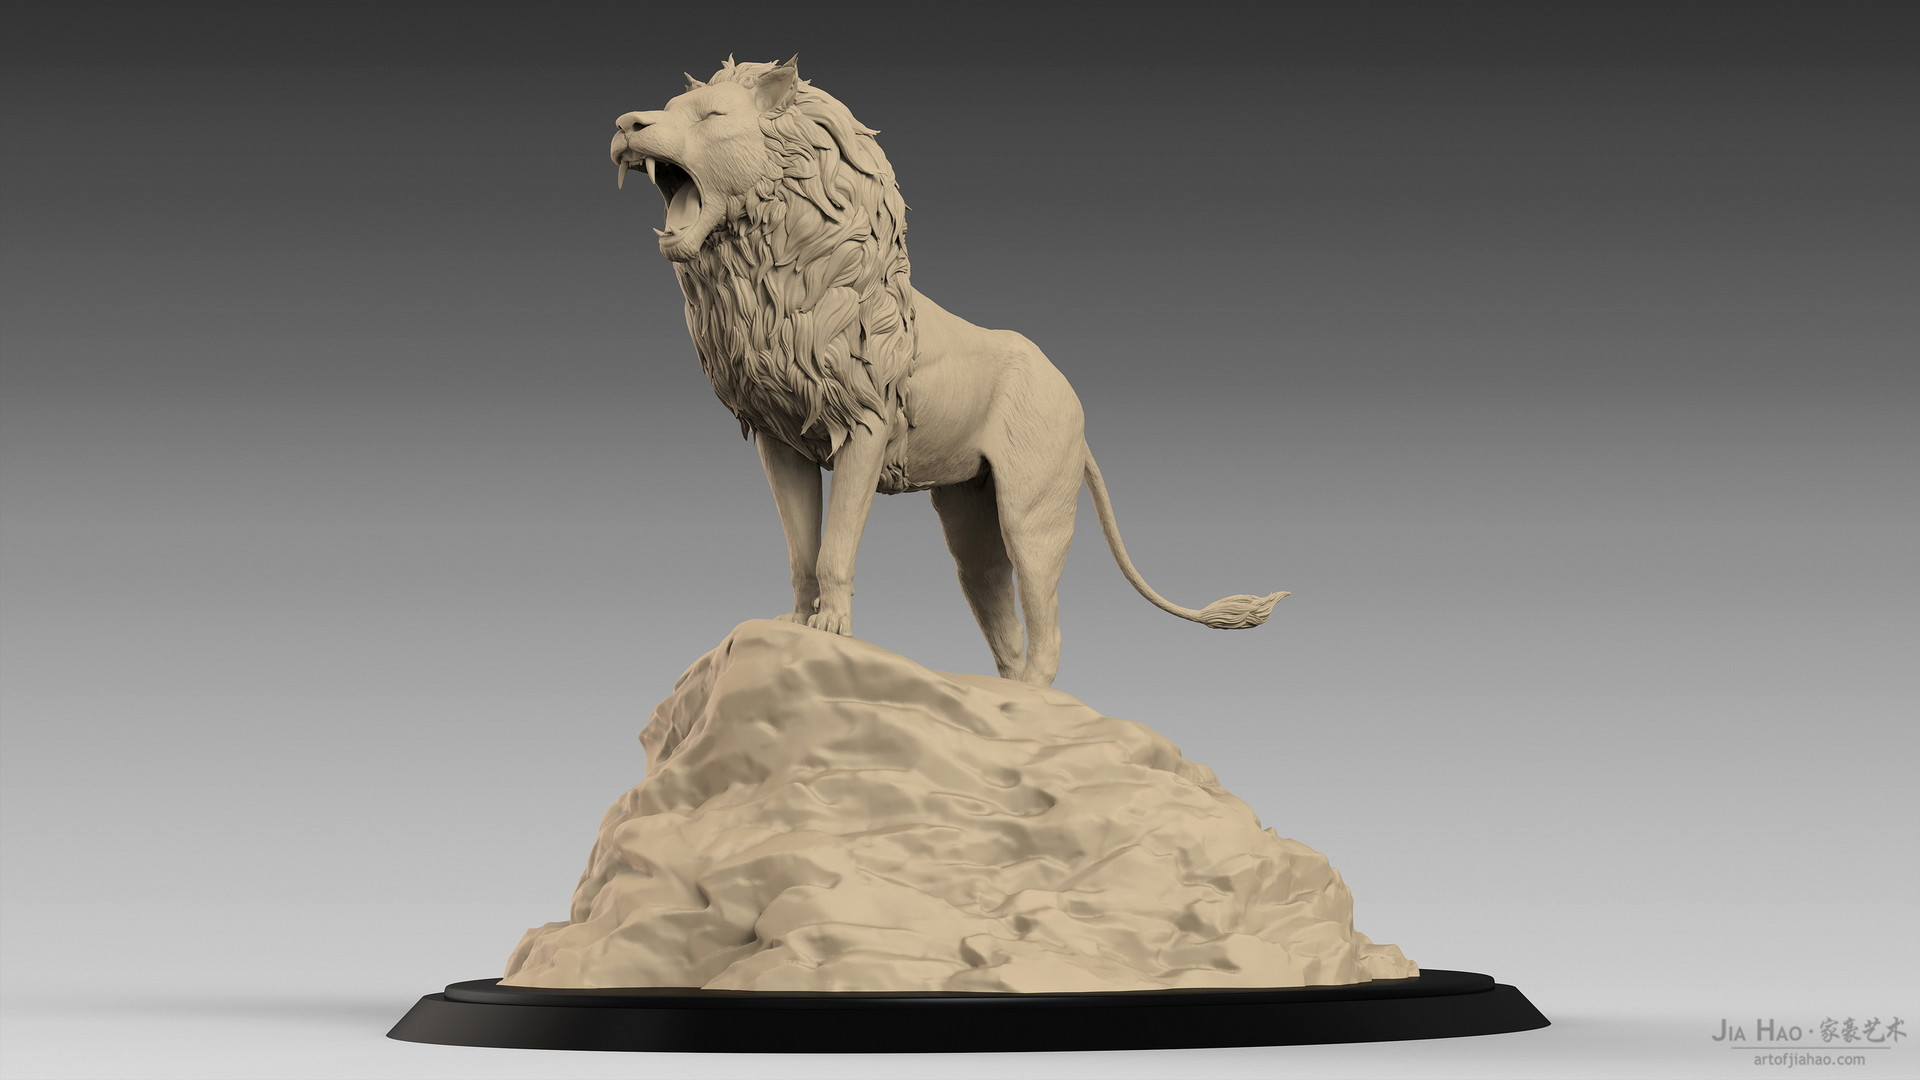 Jia hao lion digitalsculpture 02 03